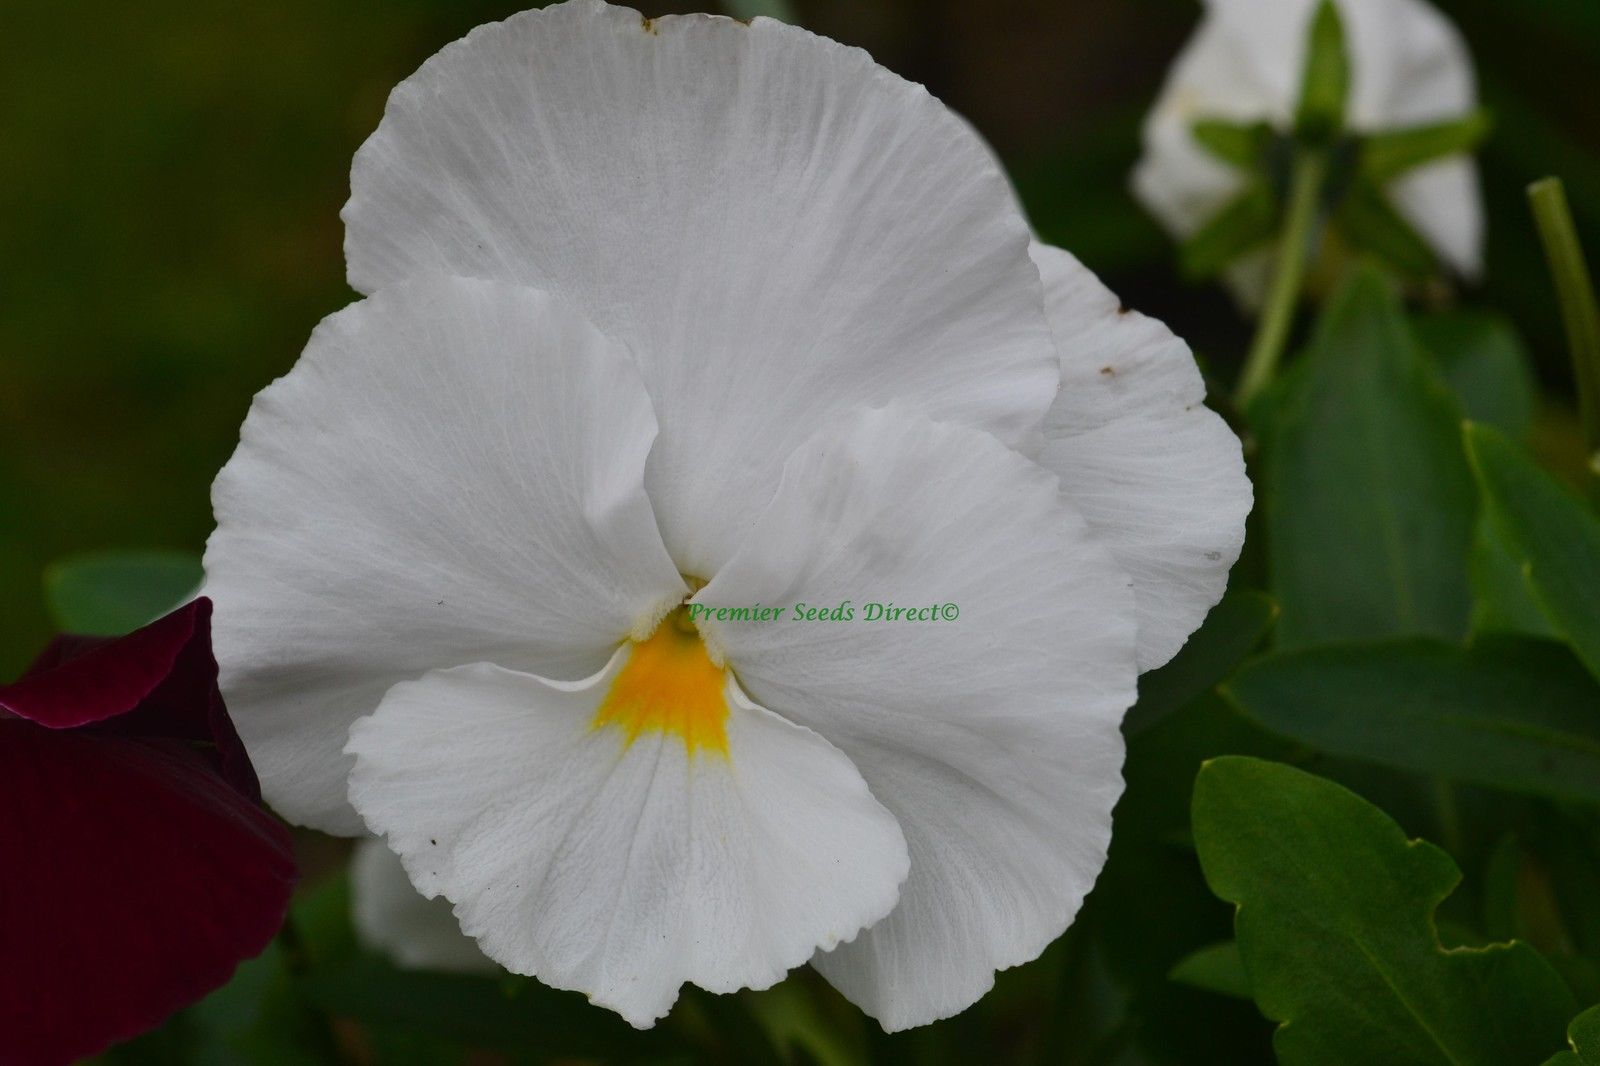 pansy white flowers premier seeds direct ltd